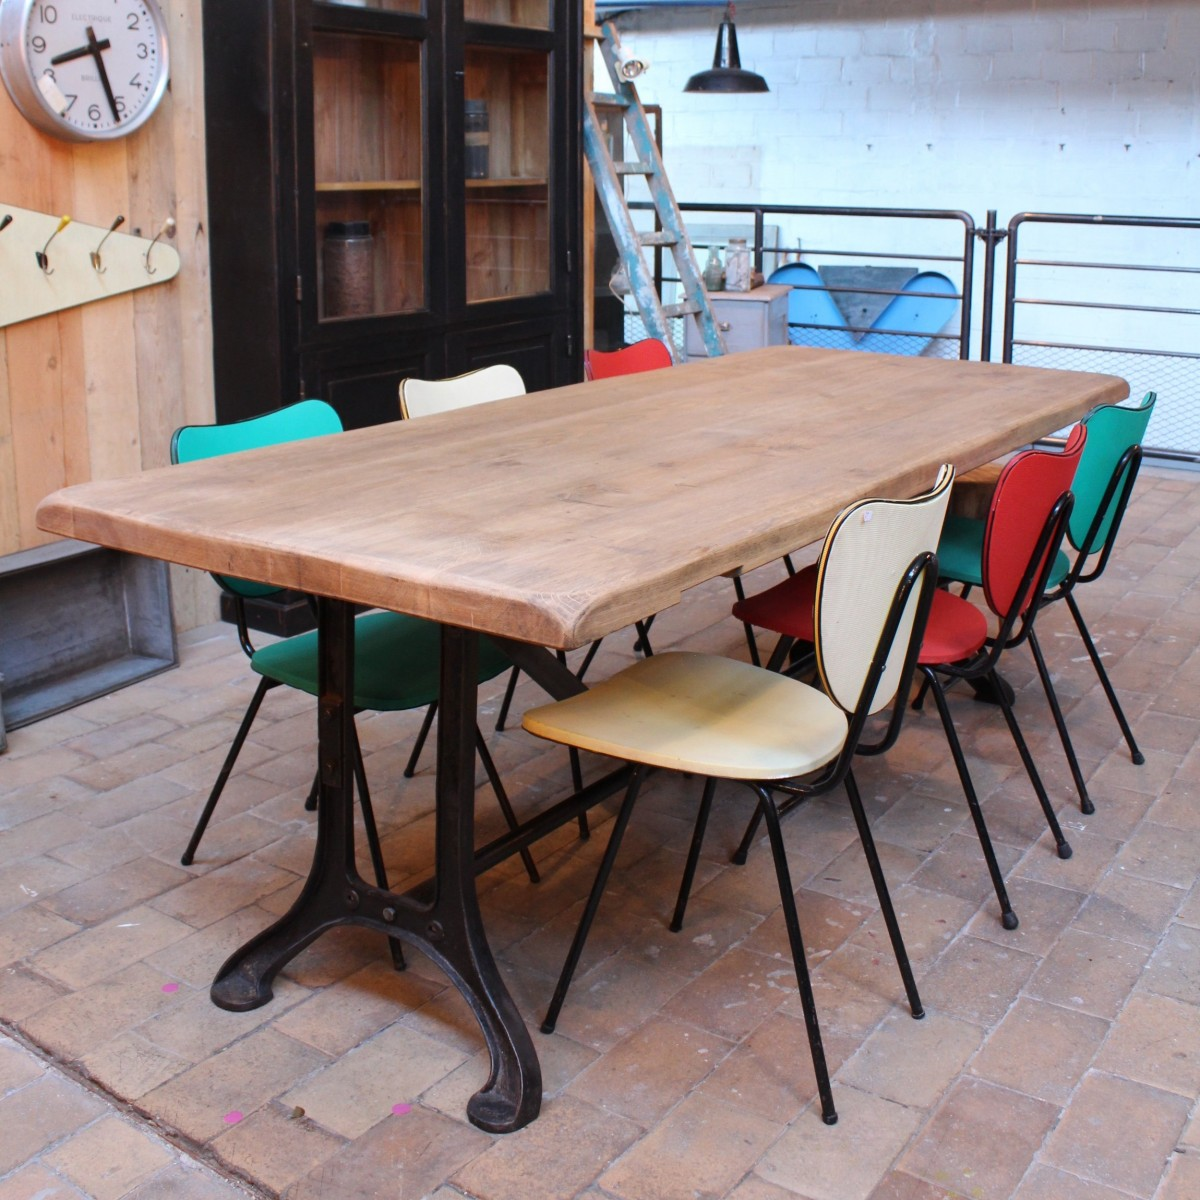 Table industrielle pied fonte